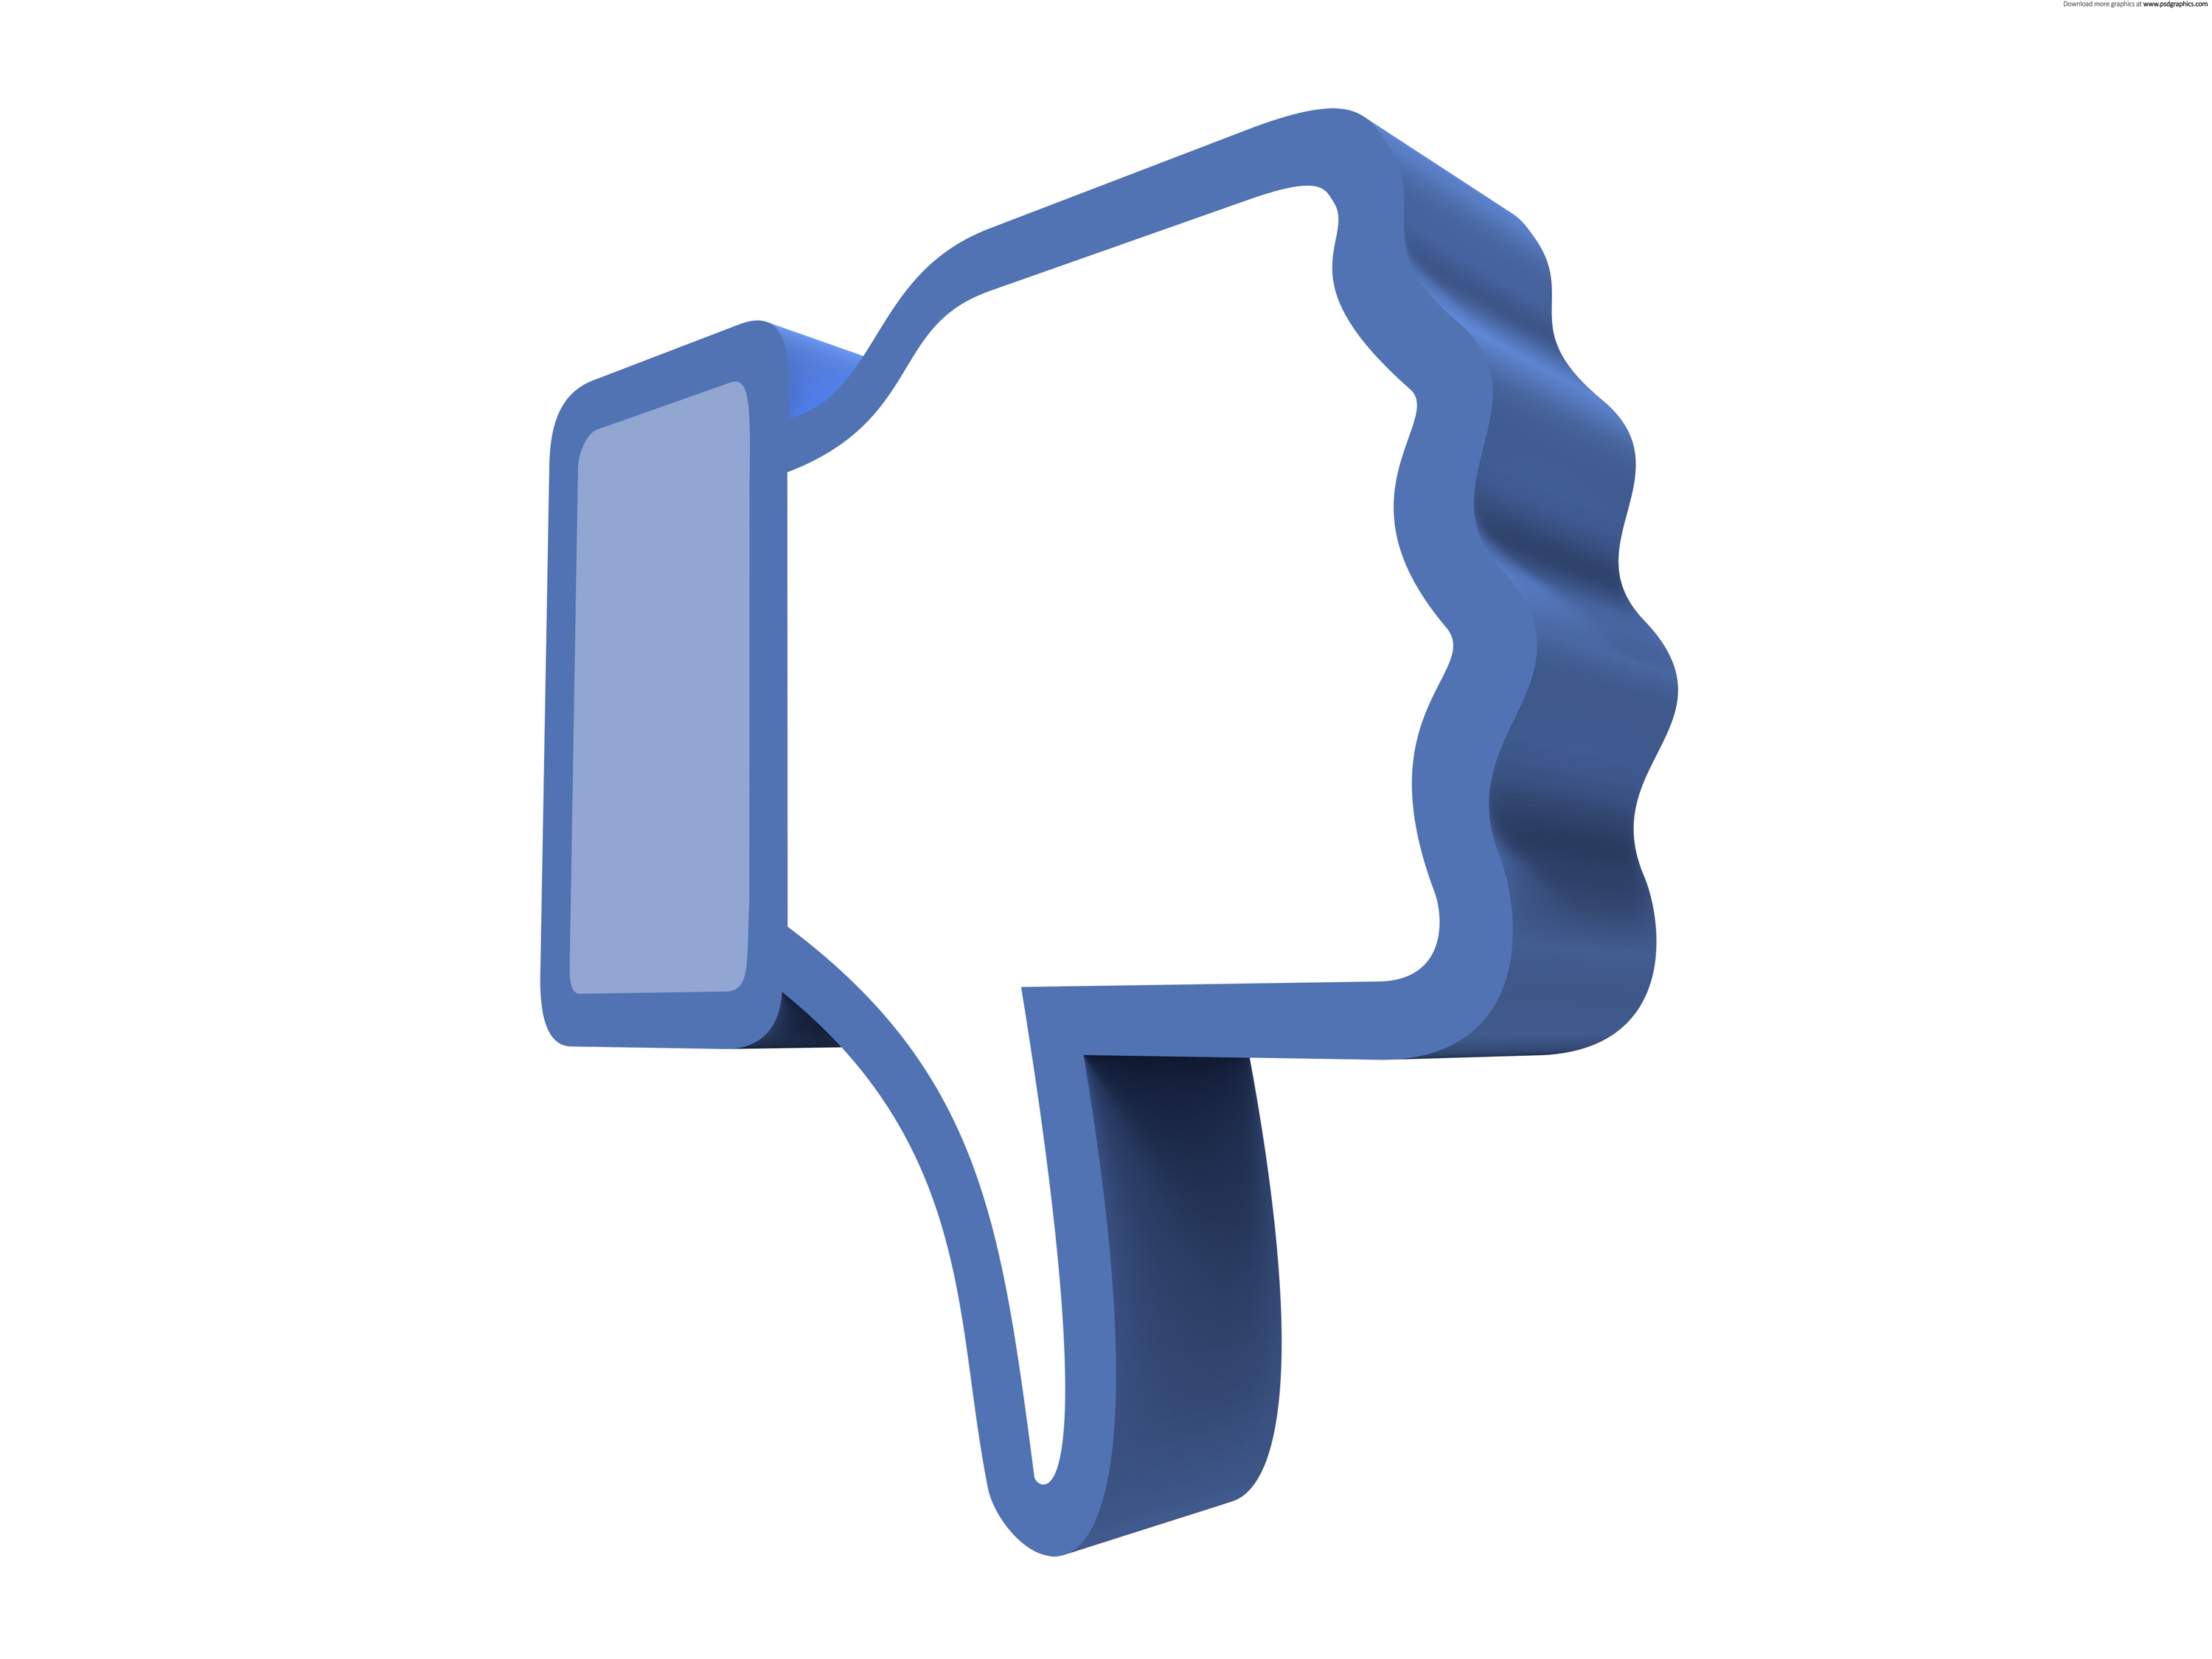 Yes, Facebook is actually developing a Dislike button